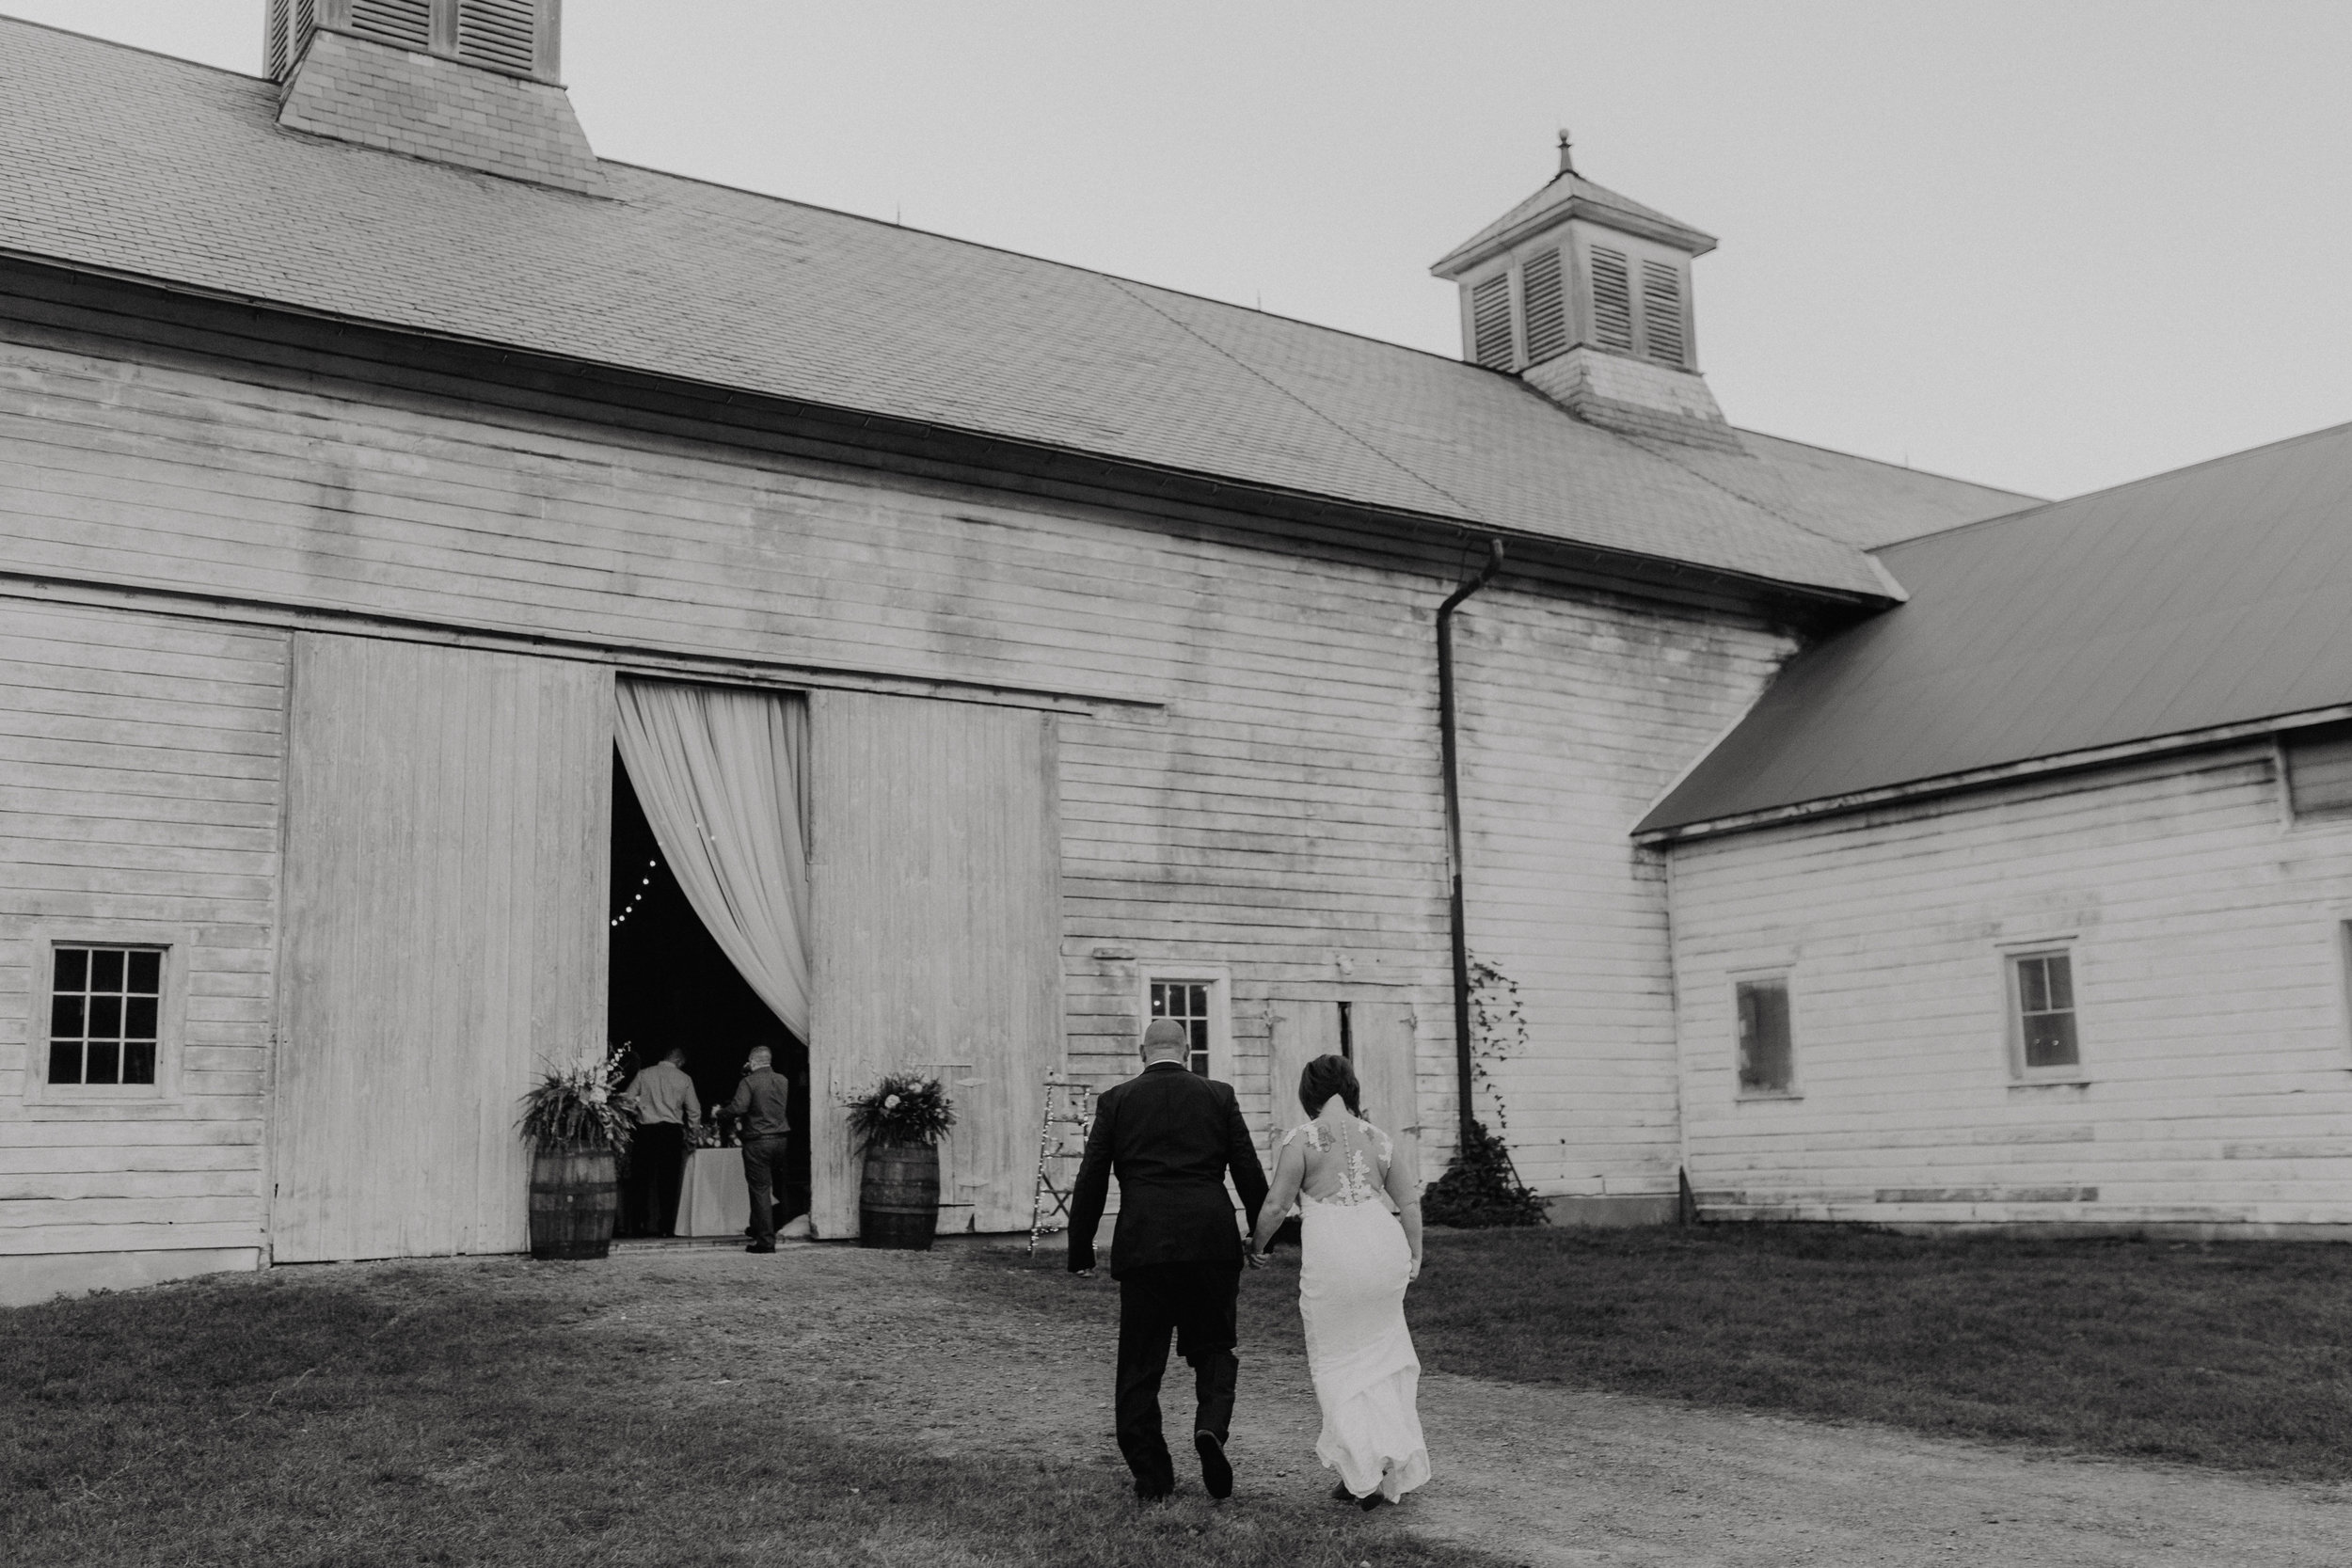 shaker_heritage_barn_wedding_043.jpg